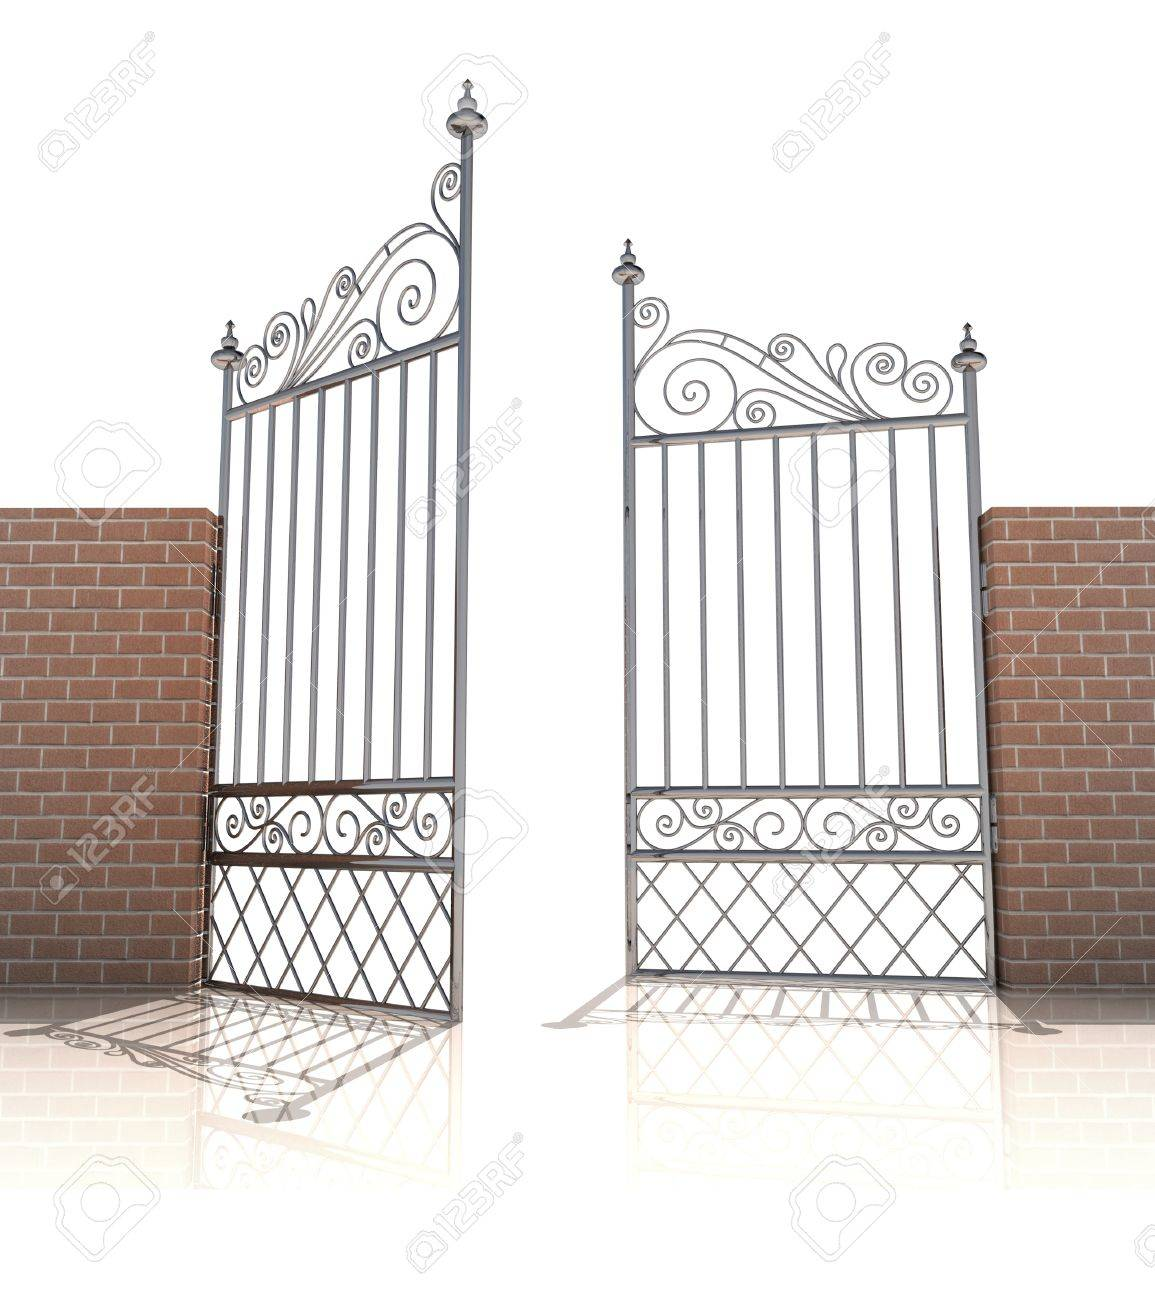 iron gate in strong brick wall on white background illustration Stock Photo - 19629796